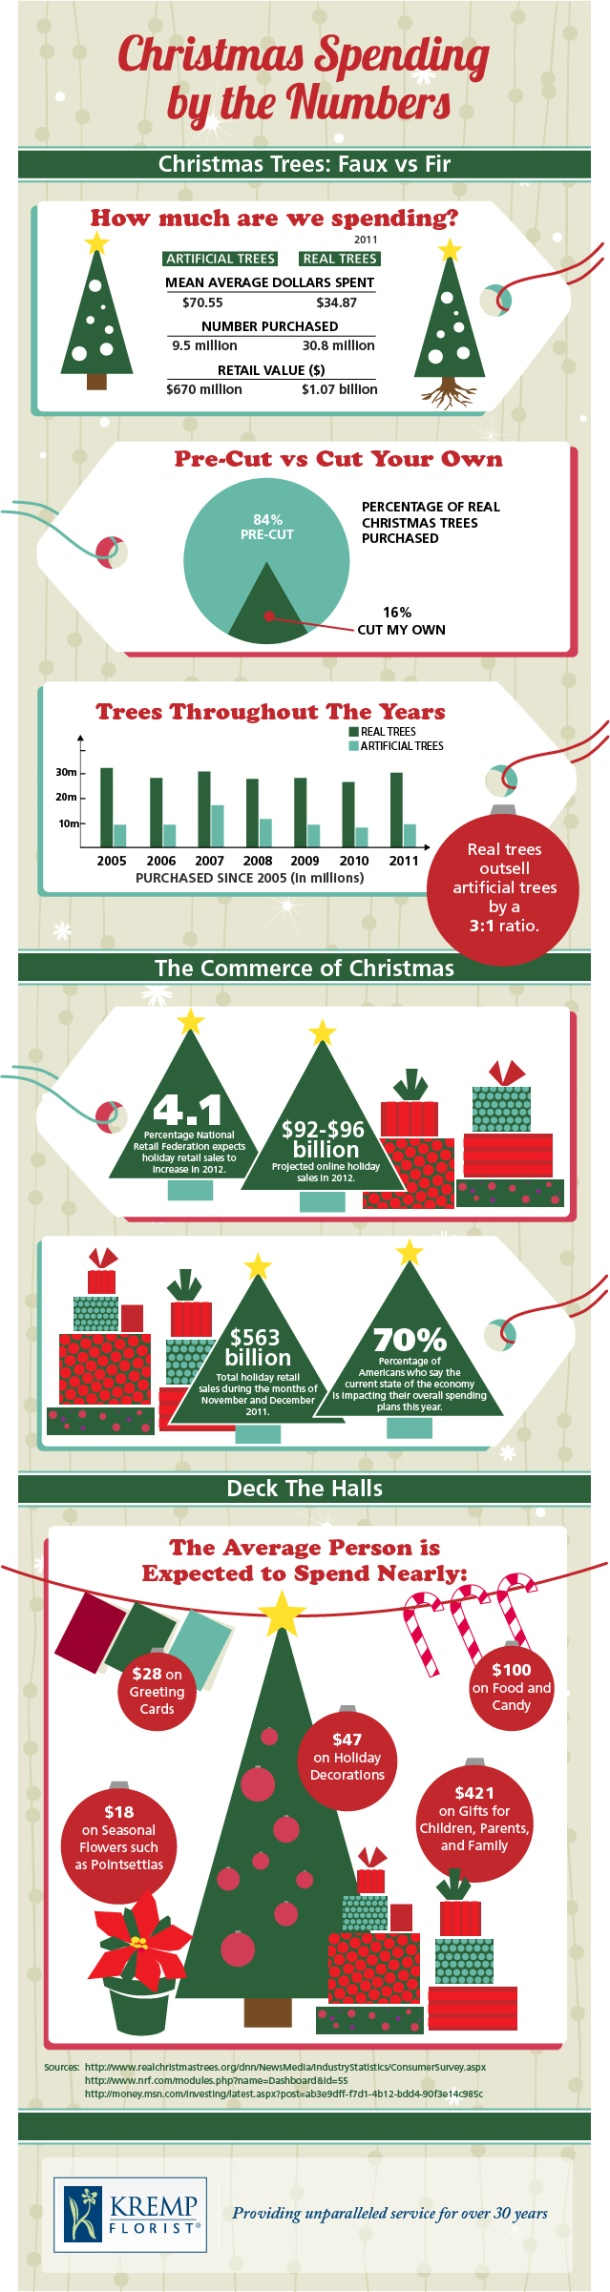 Christmas Spending By The Numbers [INFOGRAPHIC]